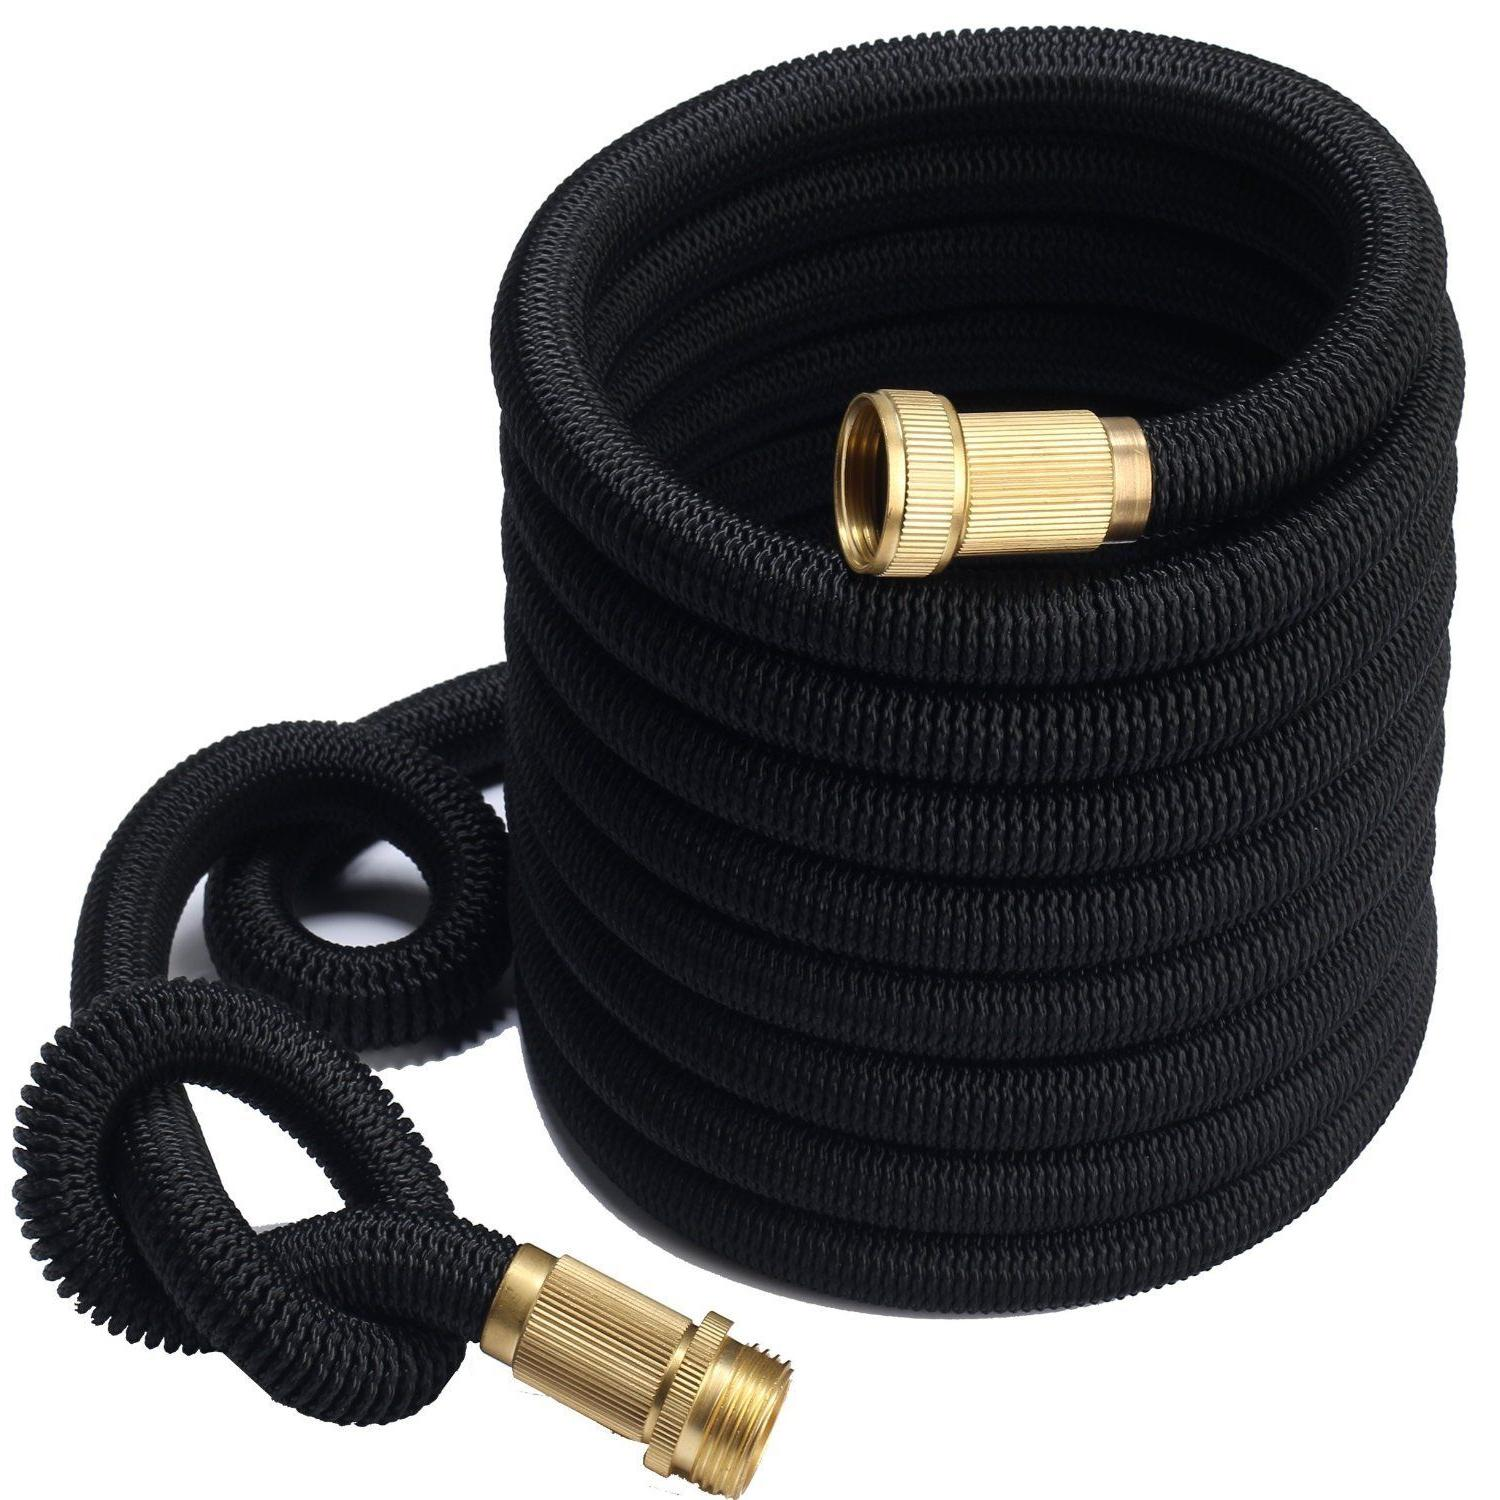 3X Stronger Deluxe 25 FT Expandable Flexible Garden Water Ho